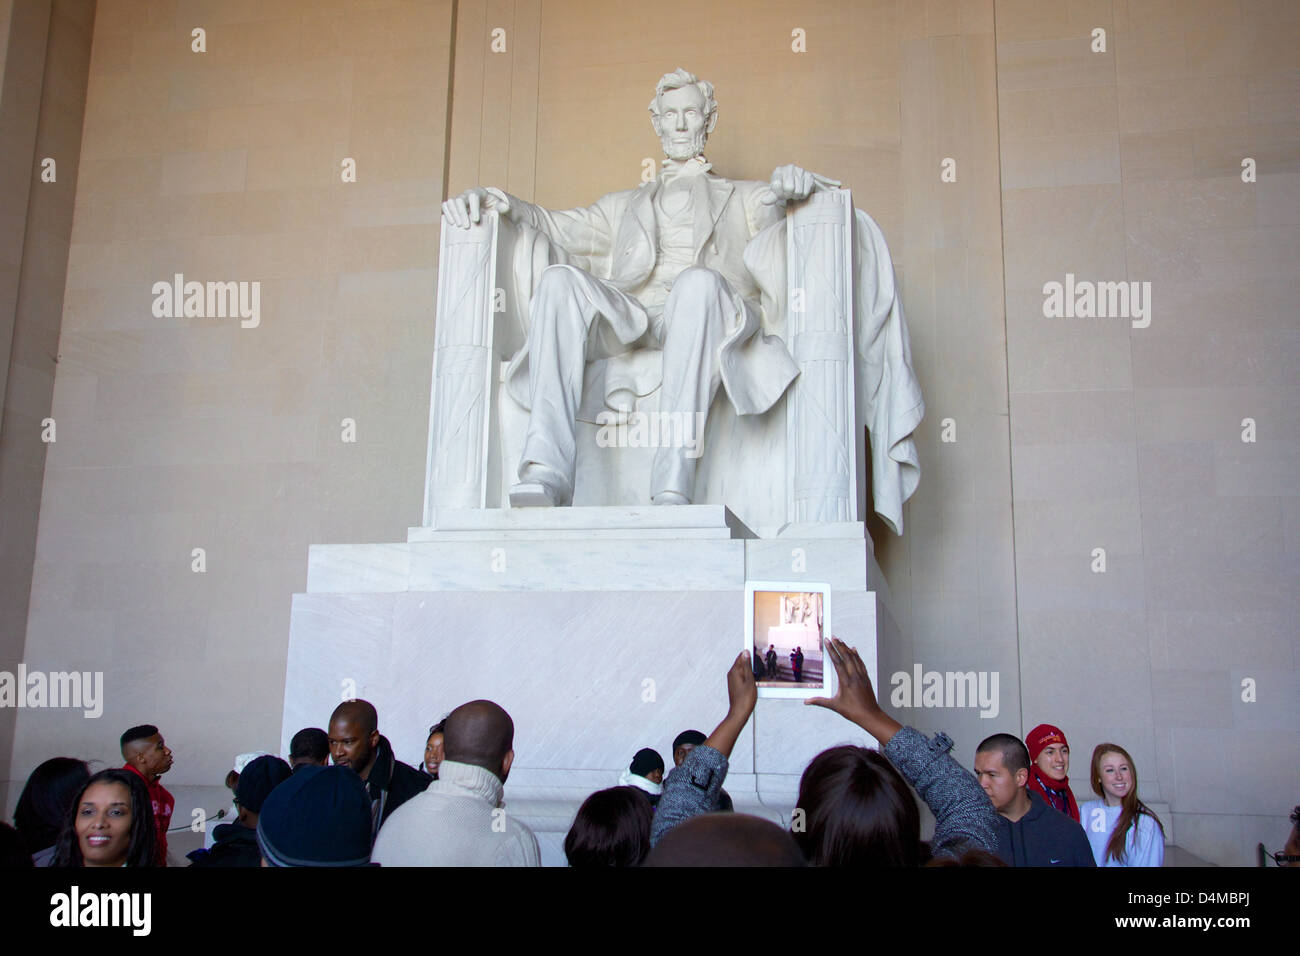 Lincoln Memorial with pre-inauguration crowd. Washington DC. Woman taking photo with iPad. Stock Photo